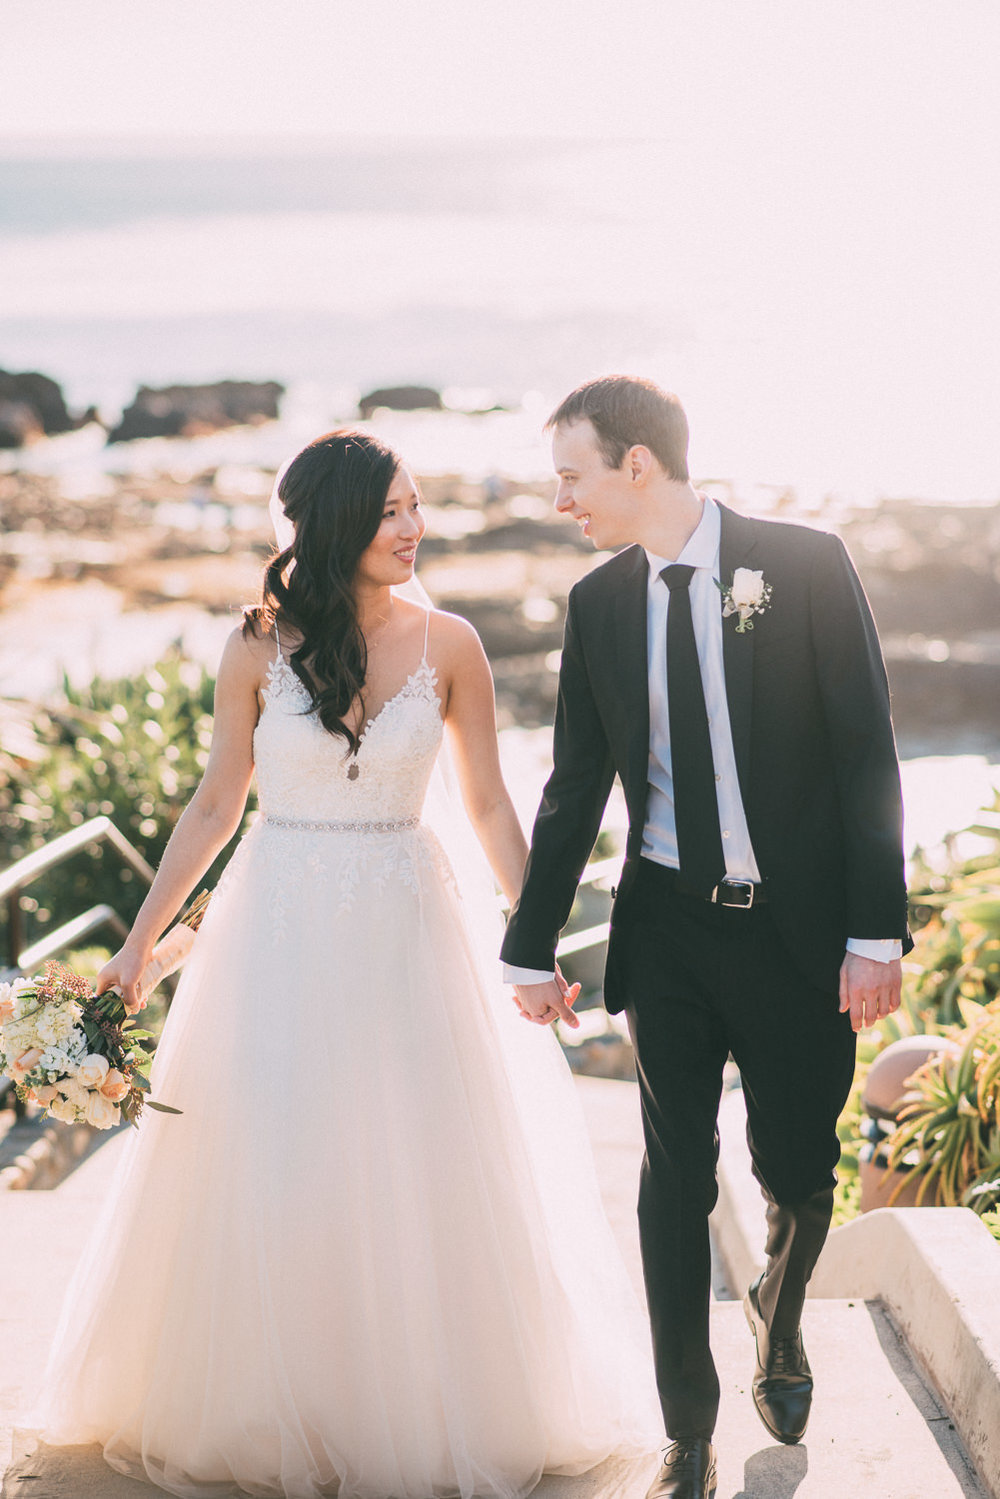 LagunaBeachArtMuseumWedding_by_TheImageIsFound.com_0054.jpg